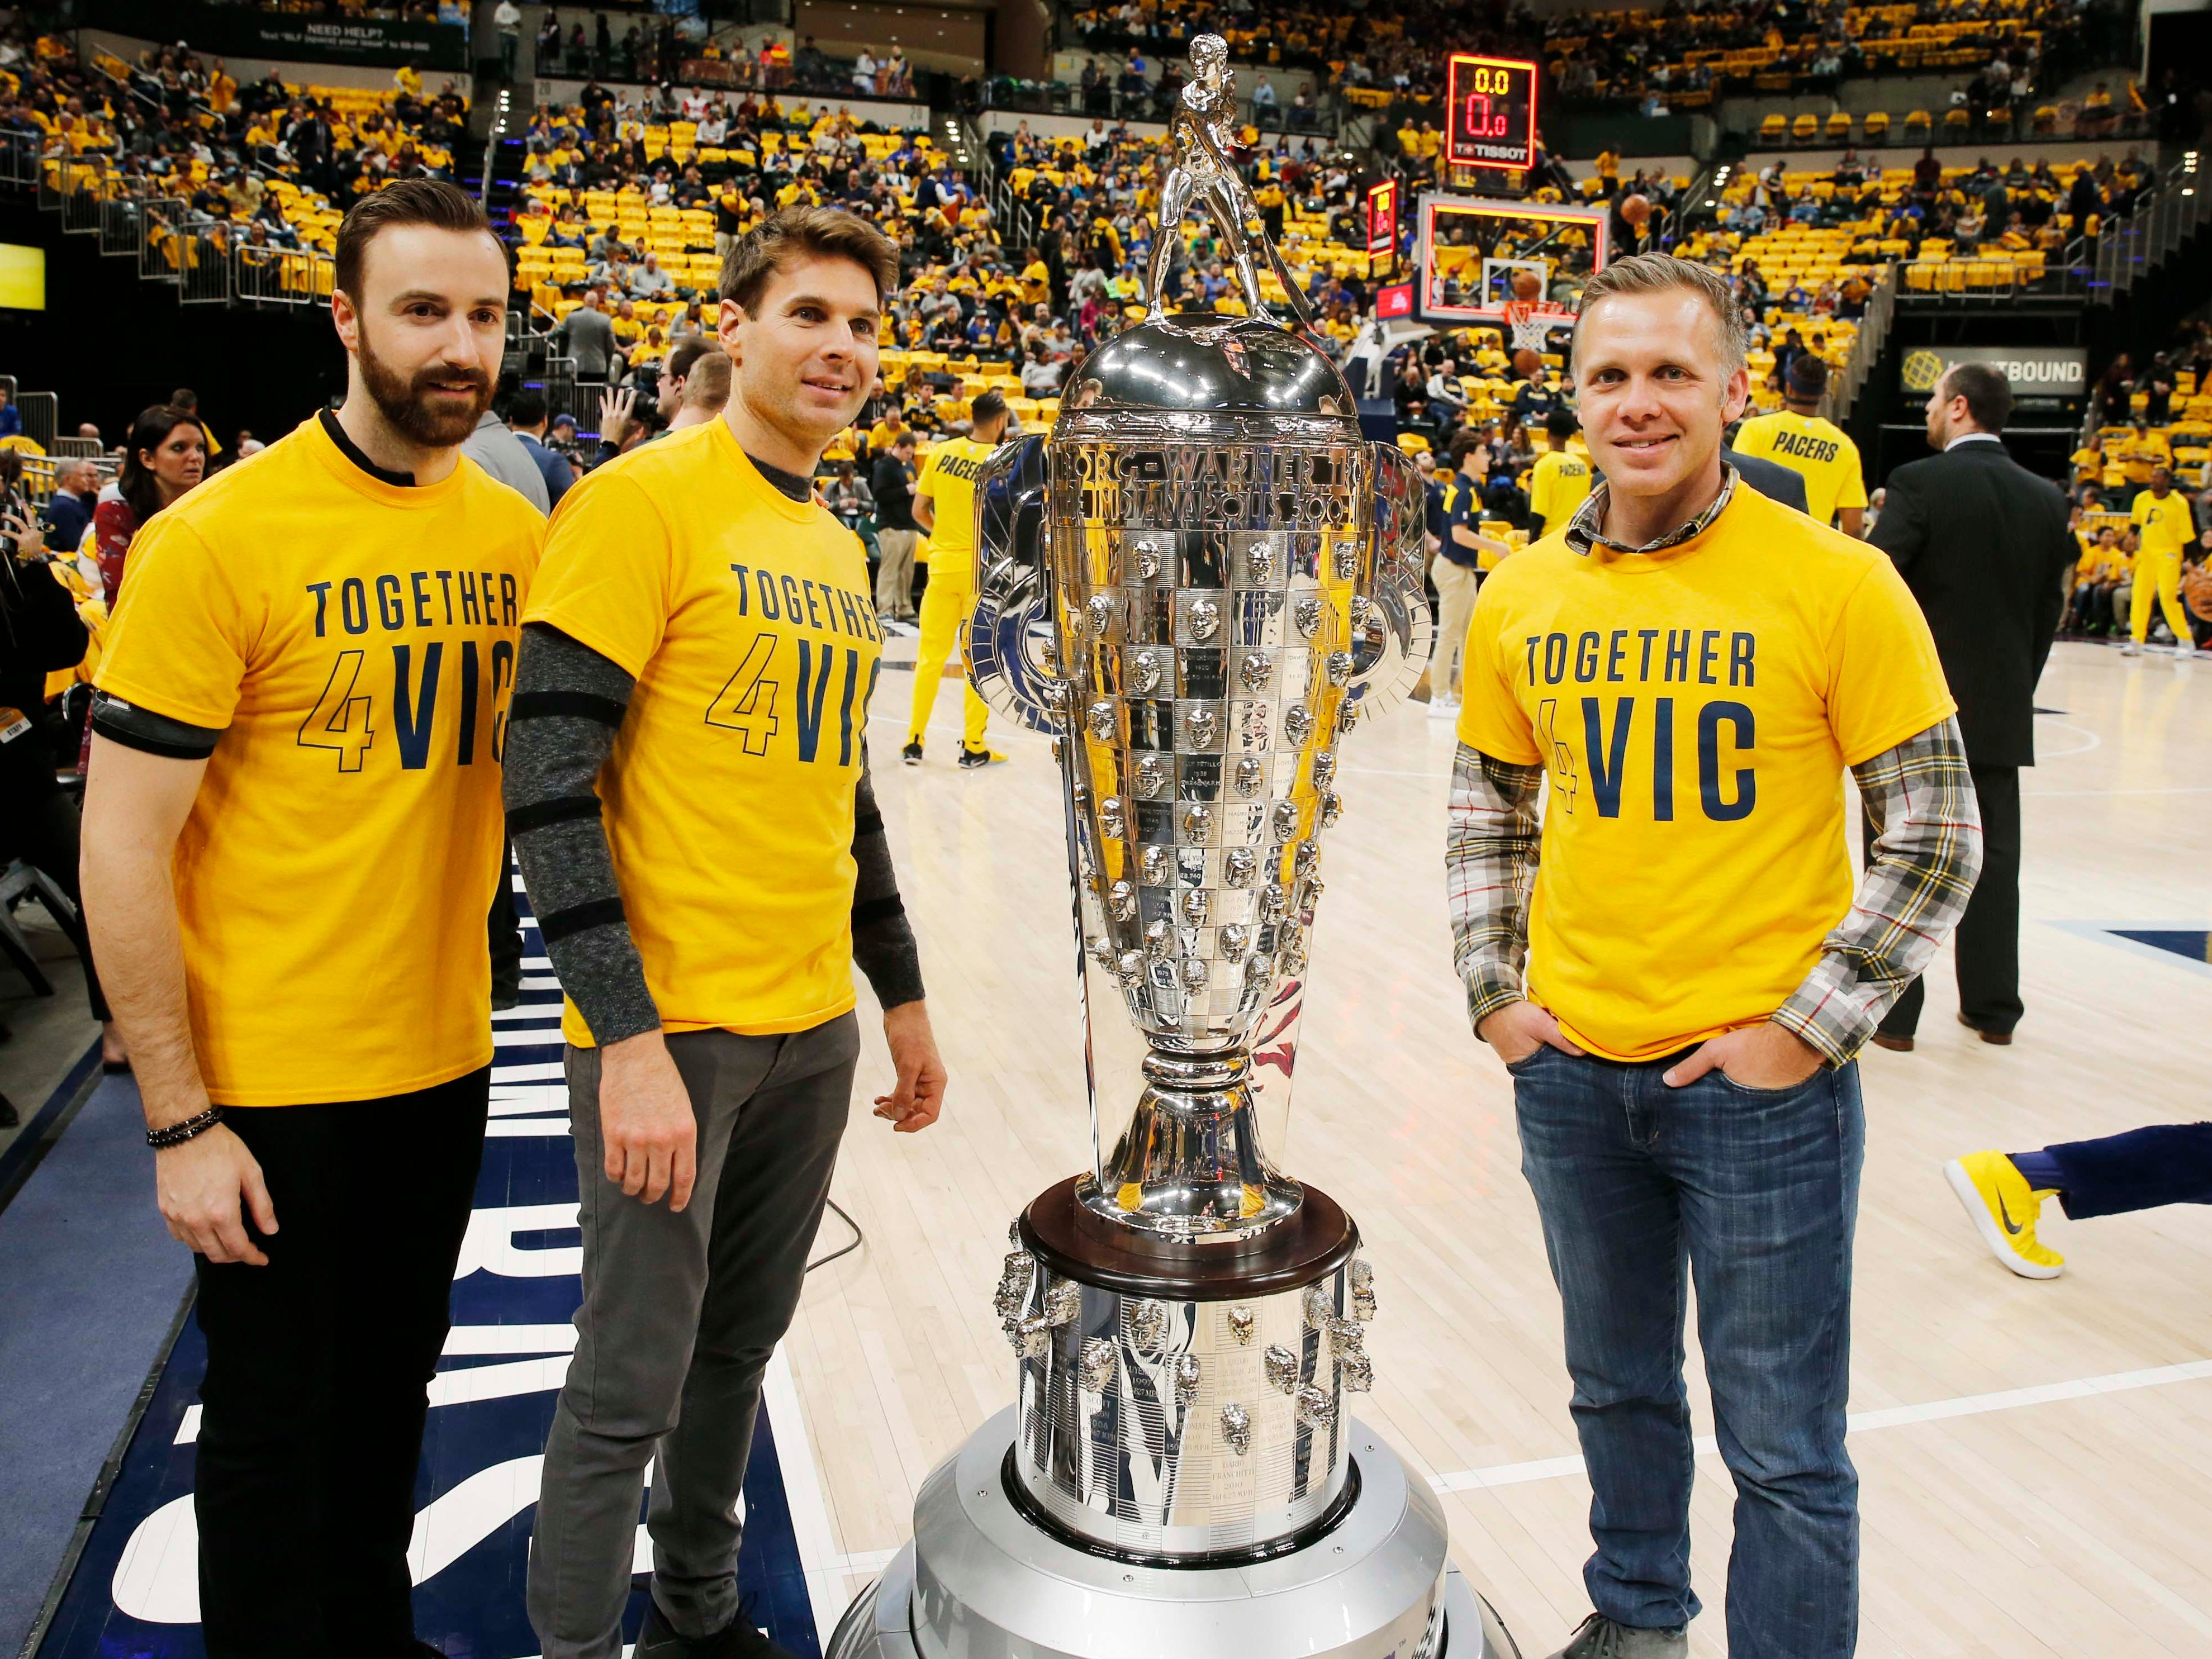 Jan. 28: IndyCar drivers, from left, James Hinchcliffe, Will Power and Ed Carpenter pose with the Borg Warner Trophy, awarded to the winner of the Indianapolis 500, at Bankers Life Fieldhouse before the Pacers play the Warriors.